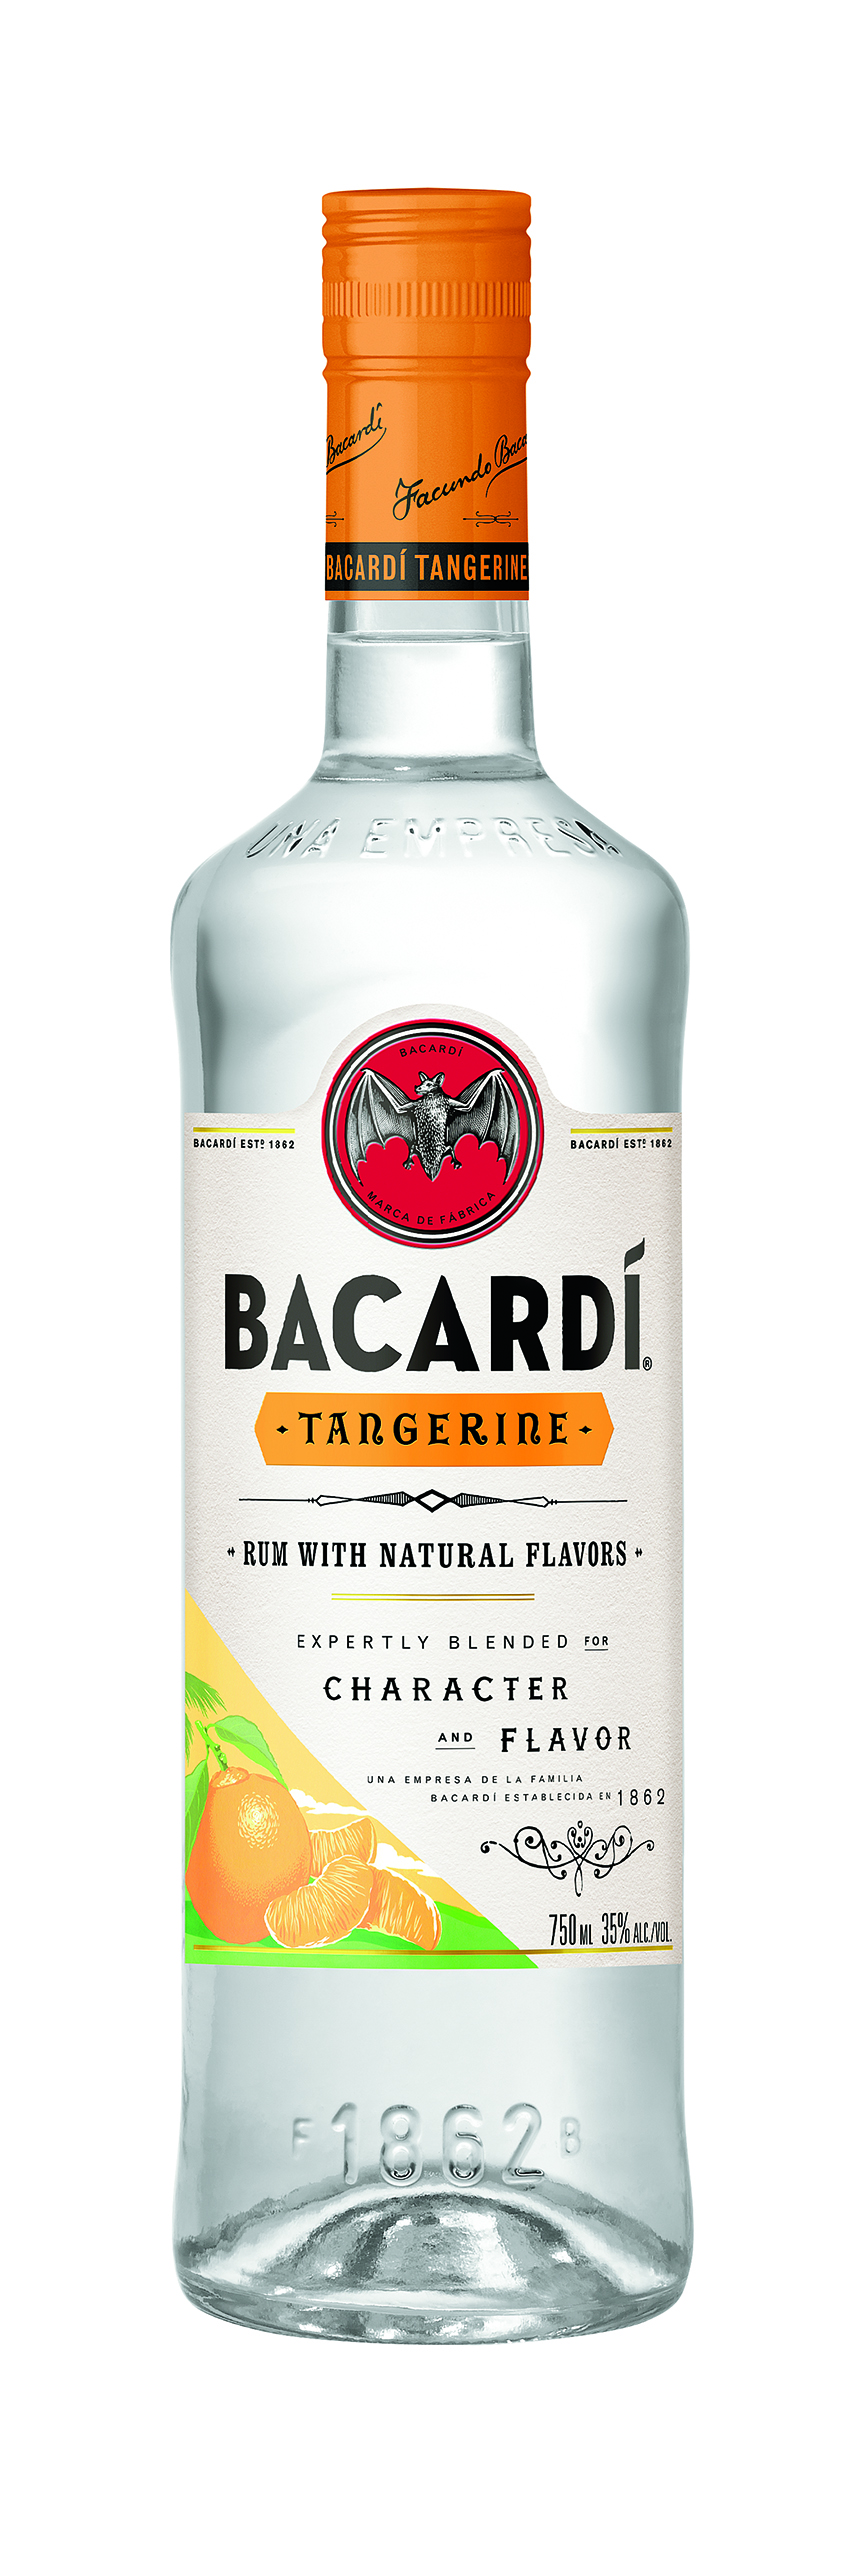 Bacardi Announces New Flavor to Rum Line